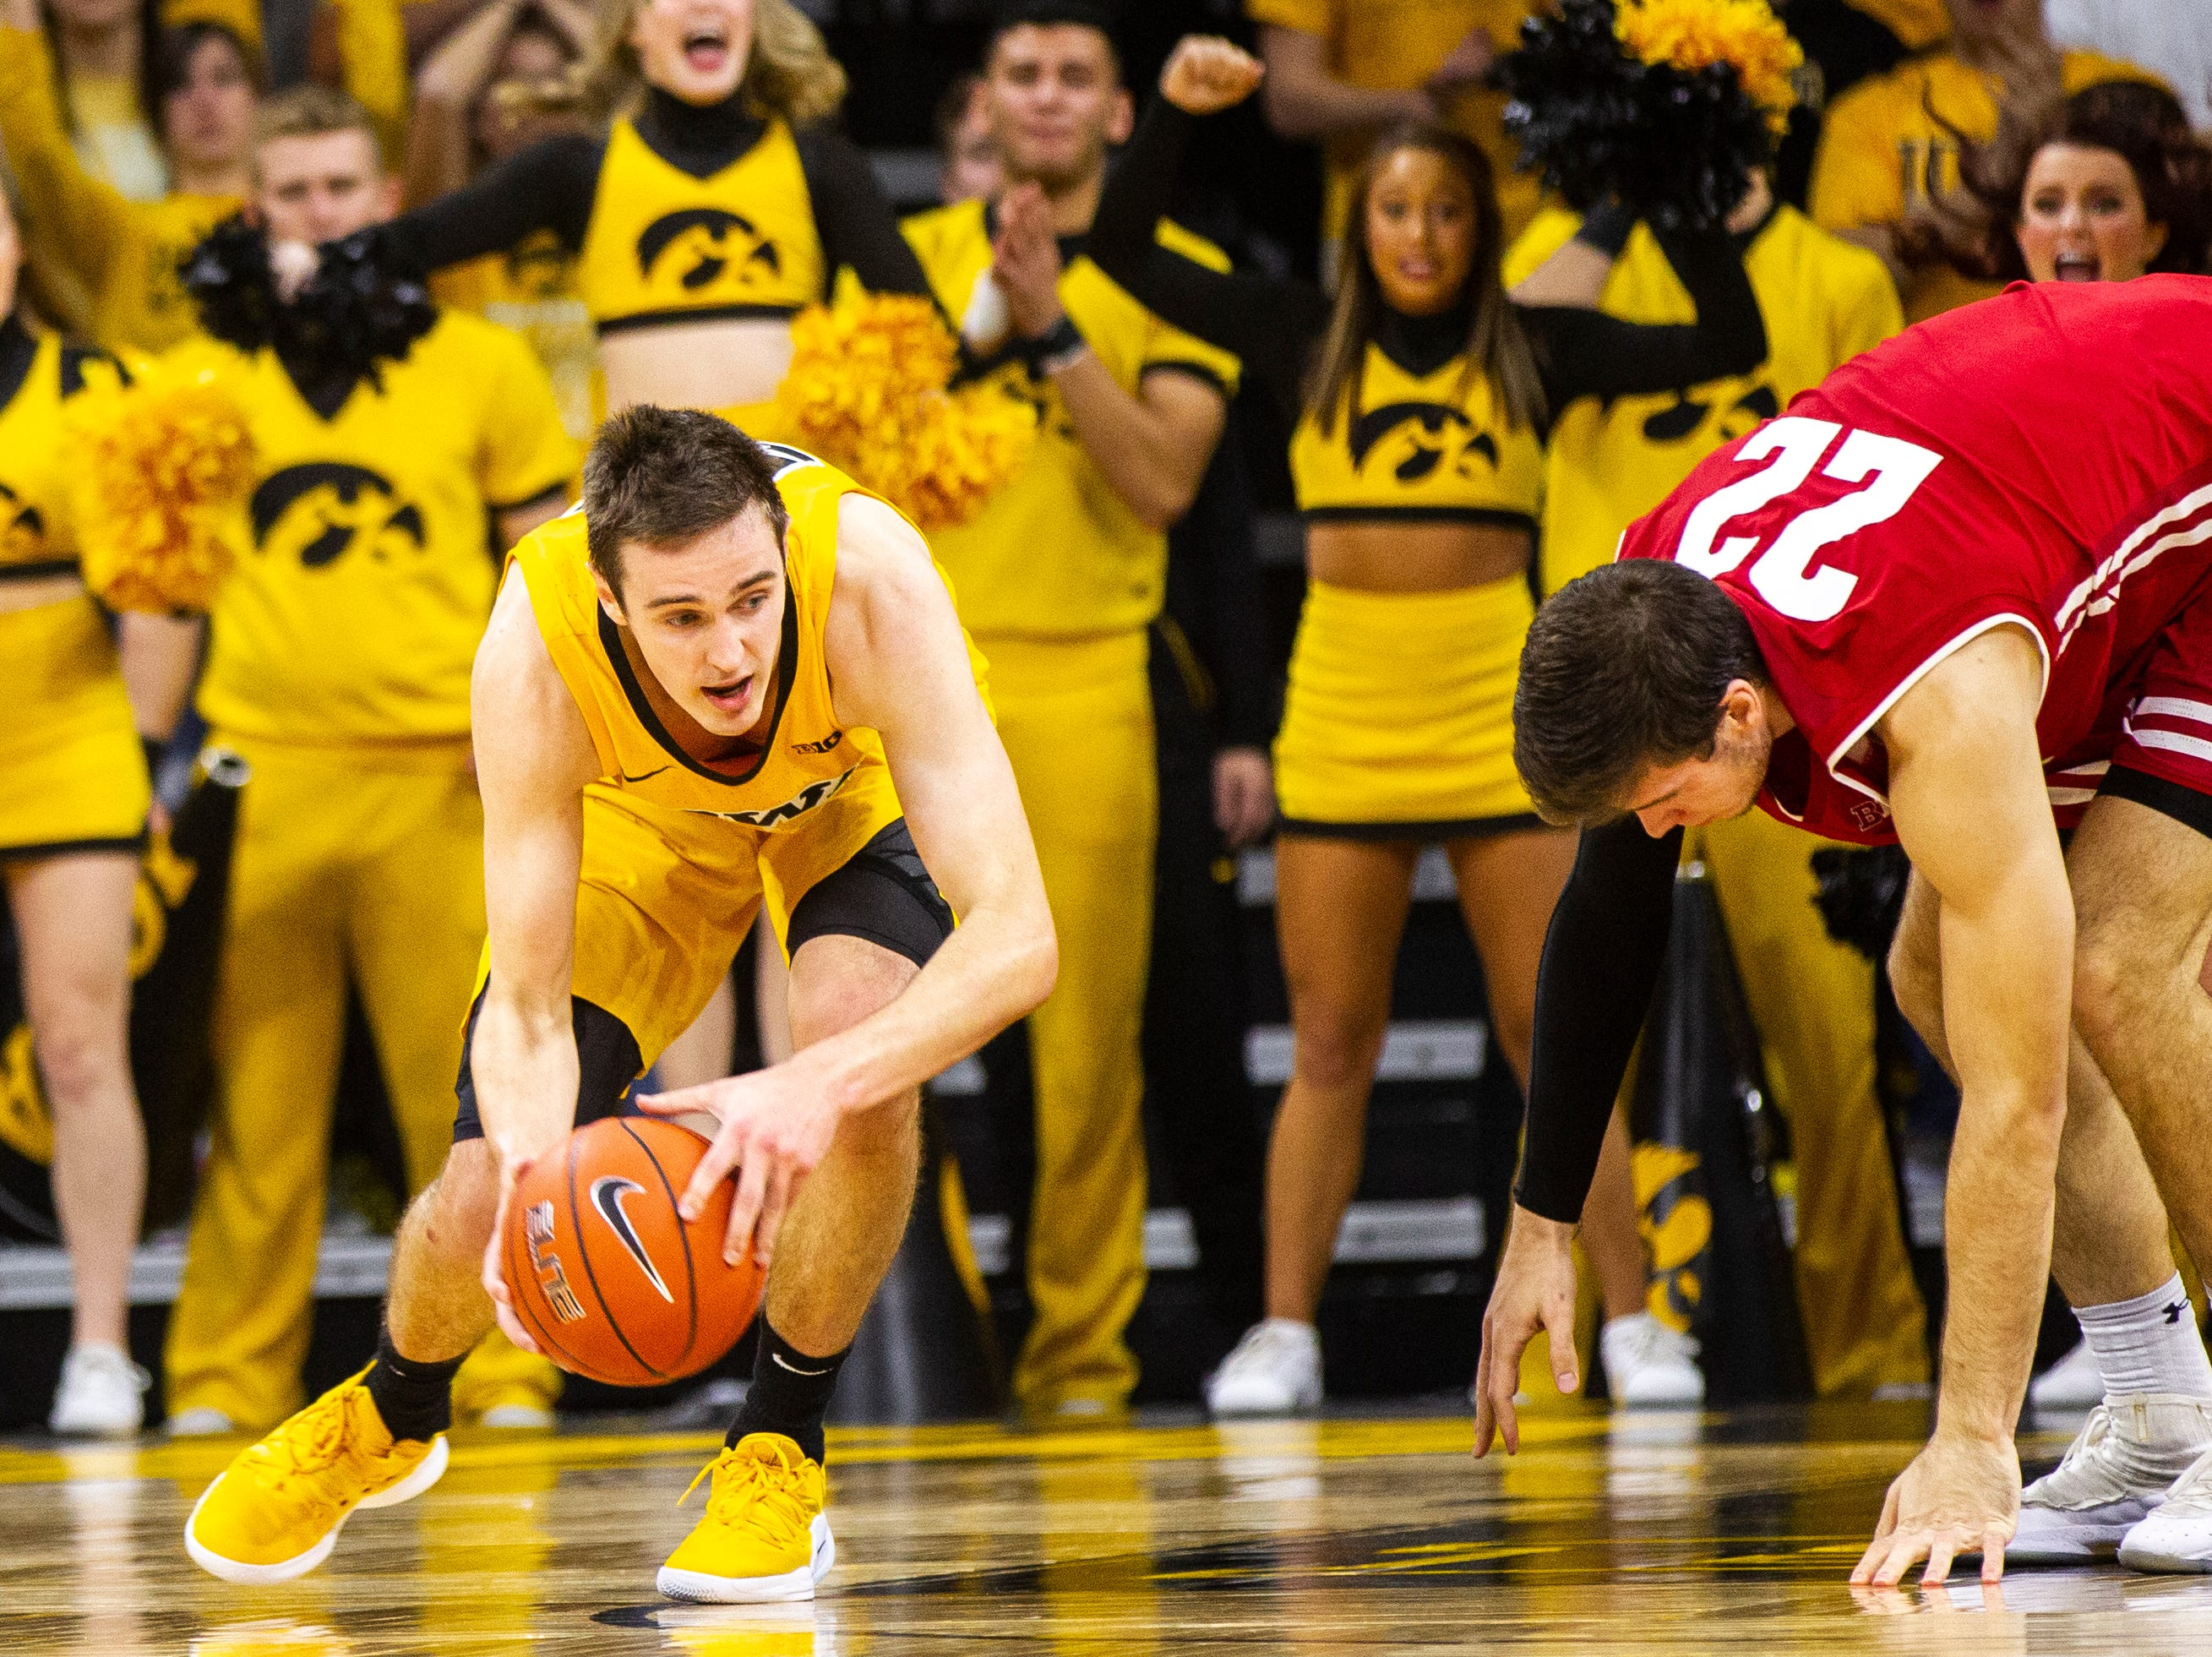 Iowa forward Nicholas Baer (51) gets a steal from Wisconsin's Ethan Happ (22) during a NCAA Big Ten Conference men's basketball game on Friday, Nov. 30, 2018, at Carver-Hawkeye Arena in Iowa City.